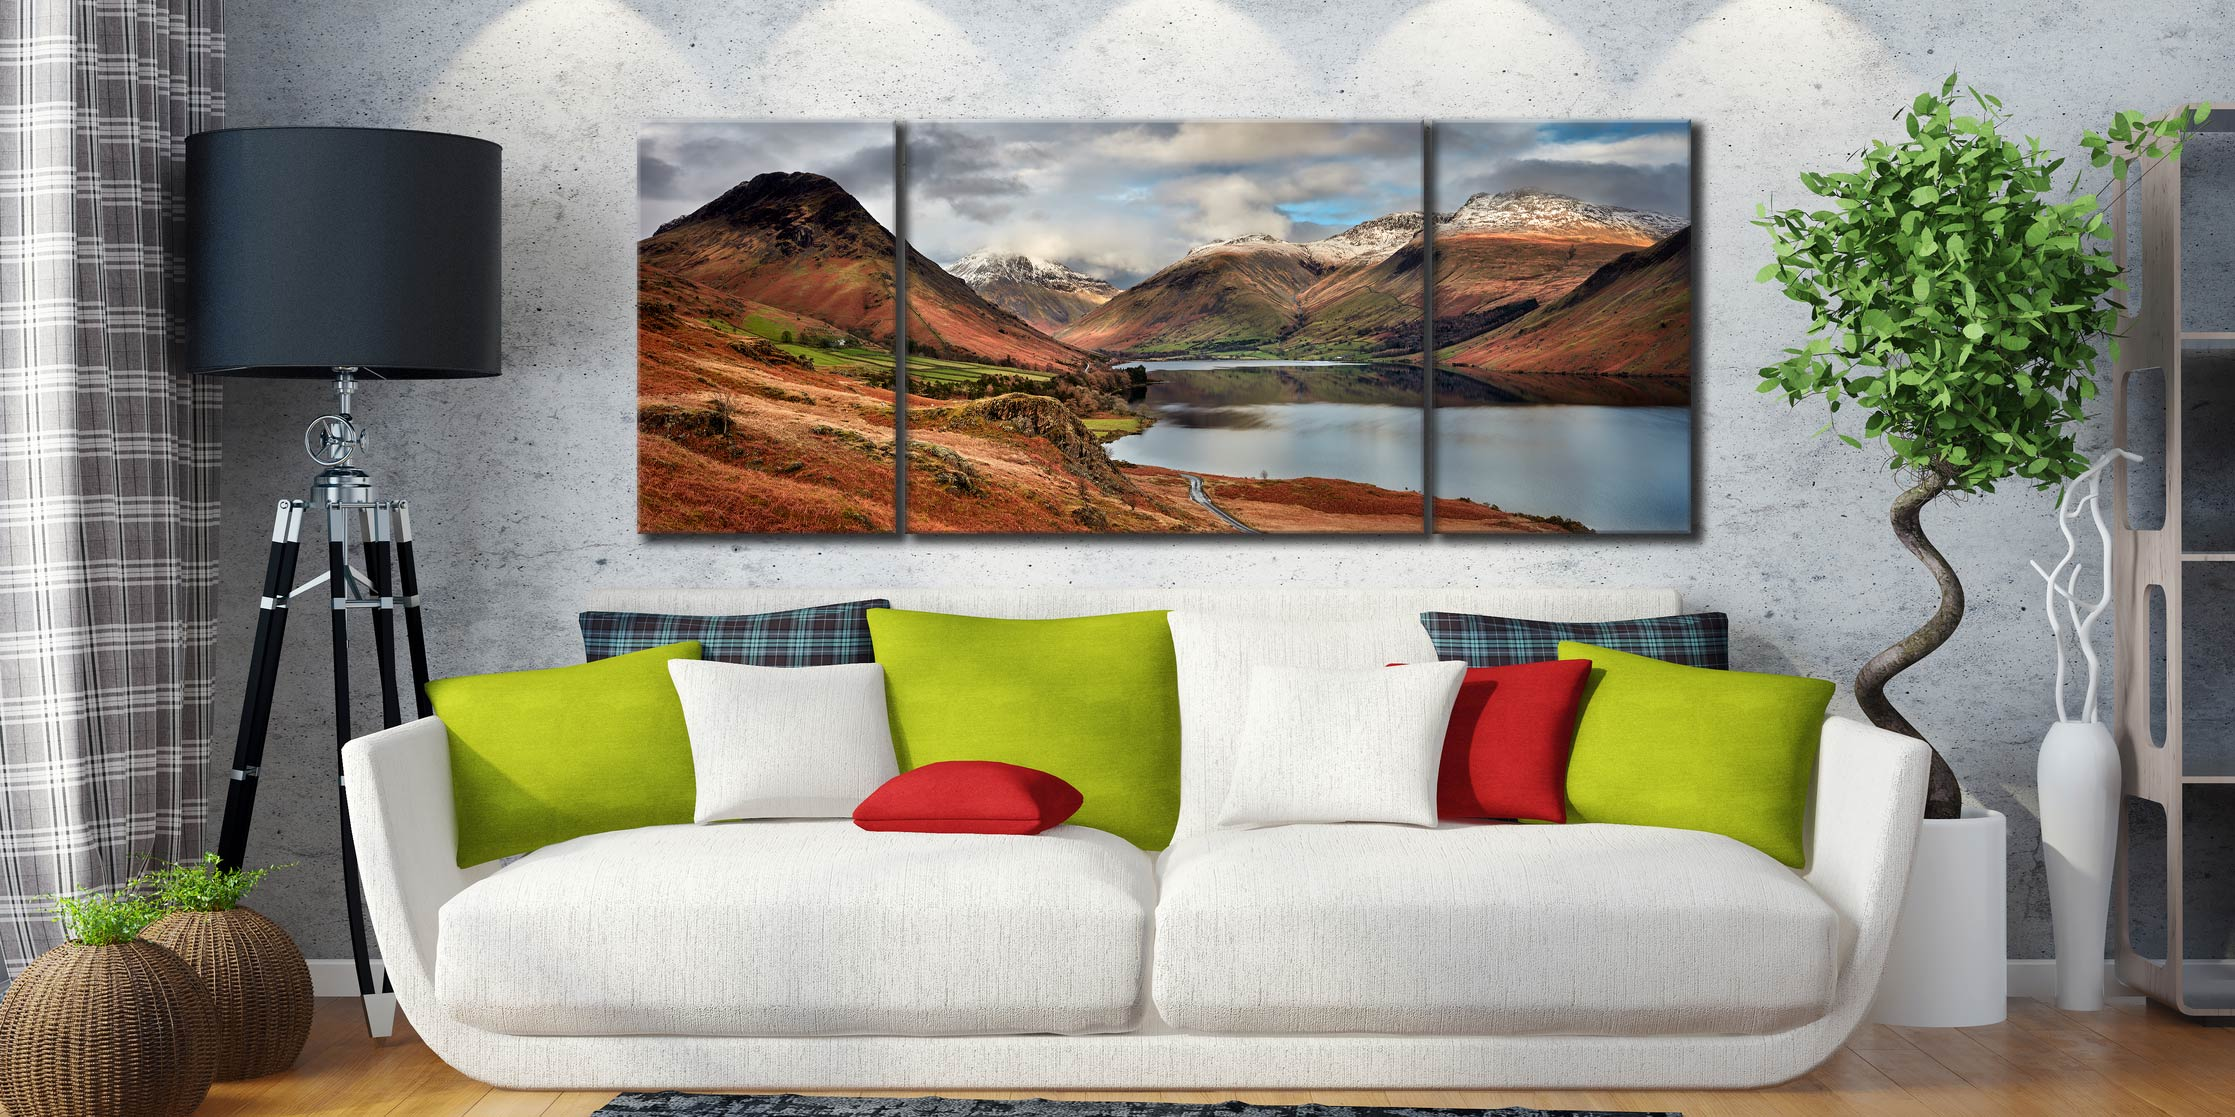 Snow on Mountains at Wast Water - 3 Panel Wide Centre Canvas on Wall